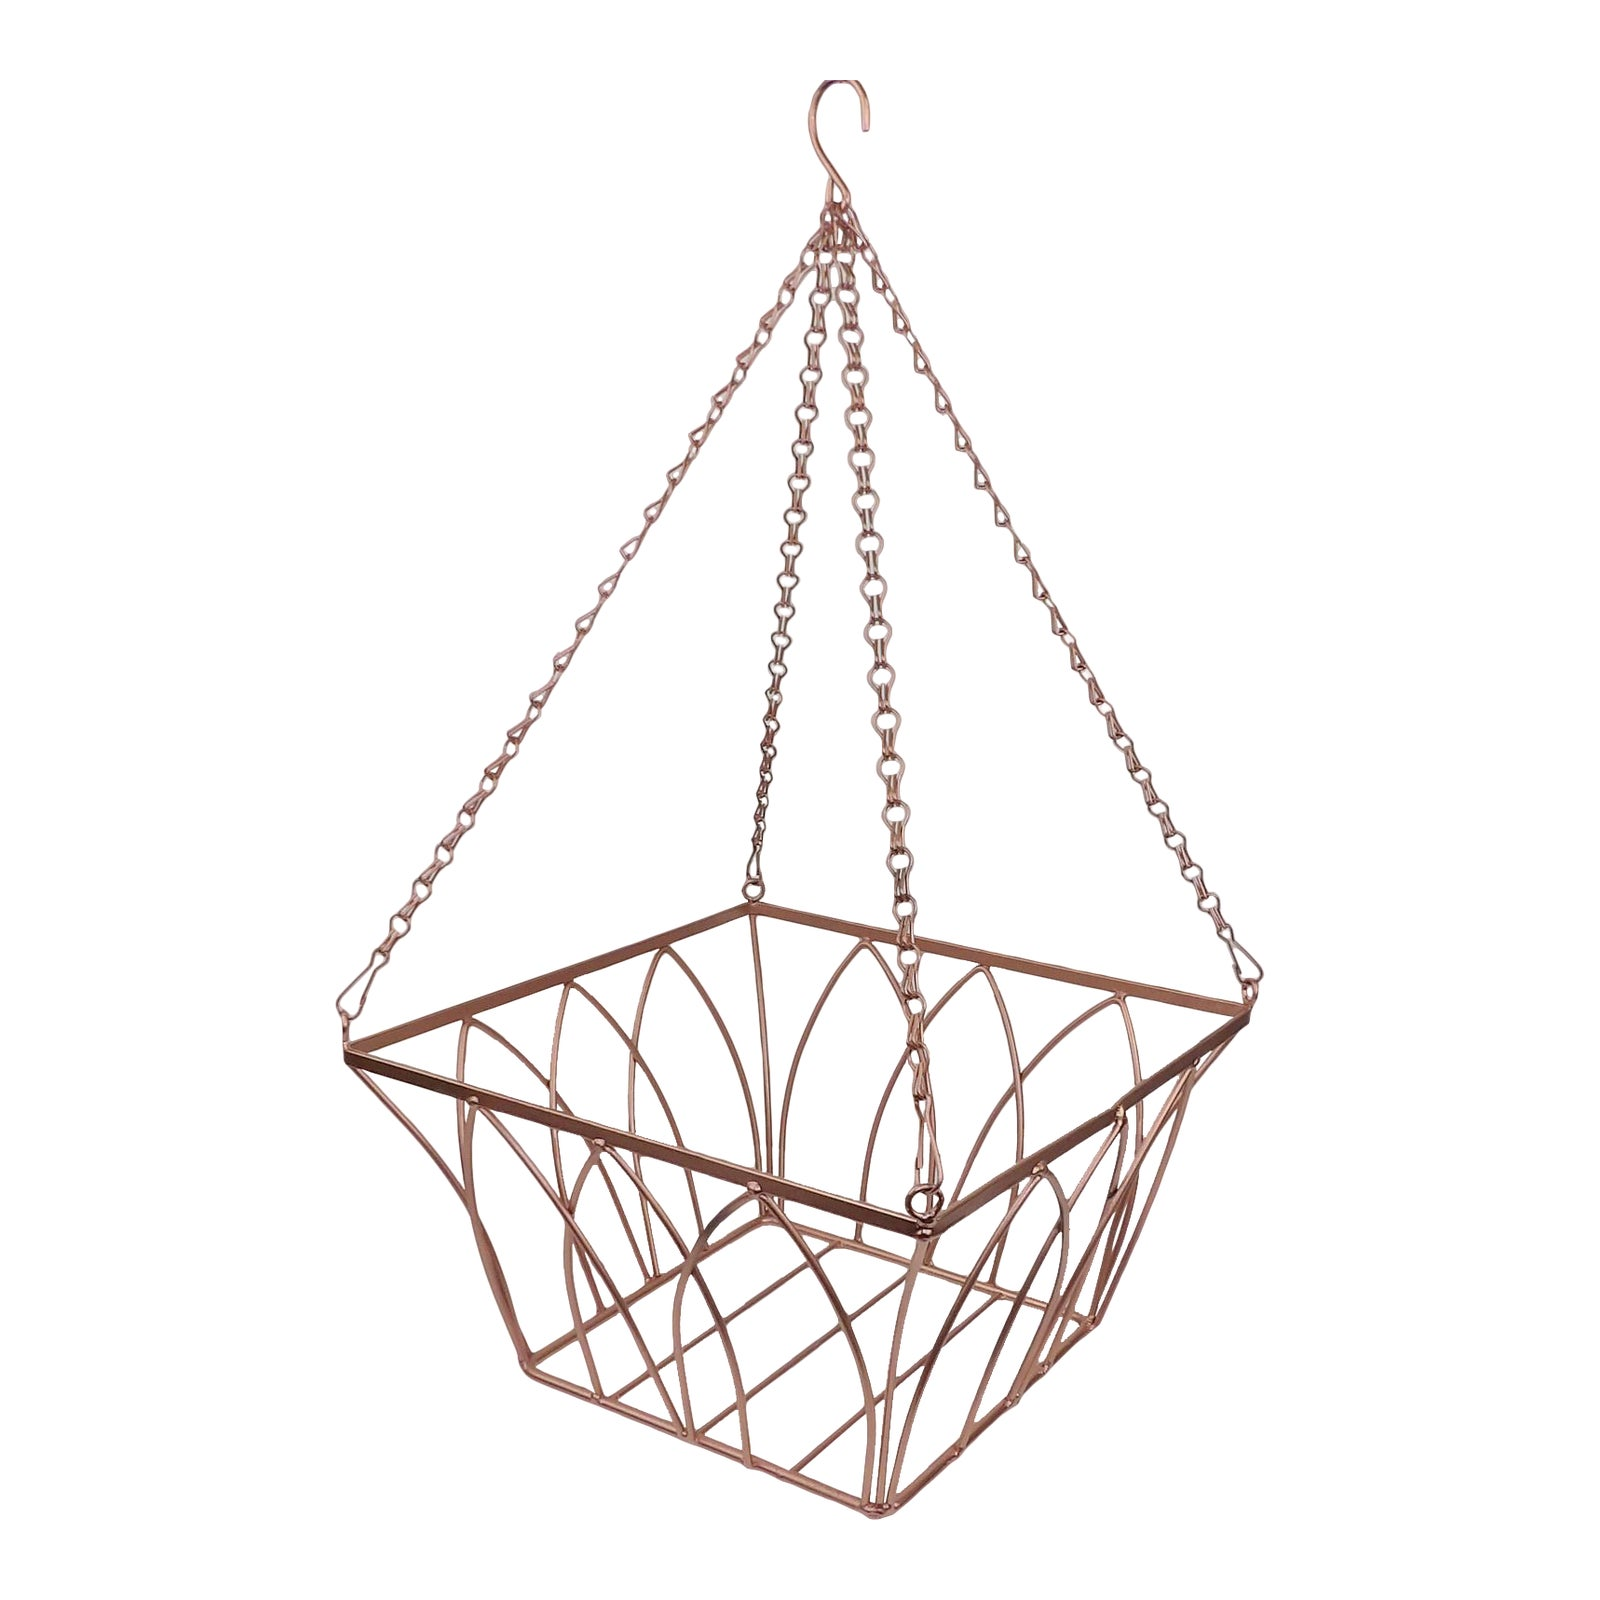 Vintage Rose Gold Copper Wire Hanging Planeter Fruit Basket | Chairish